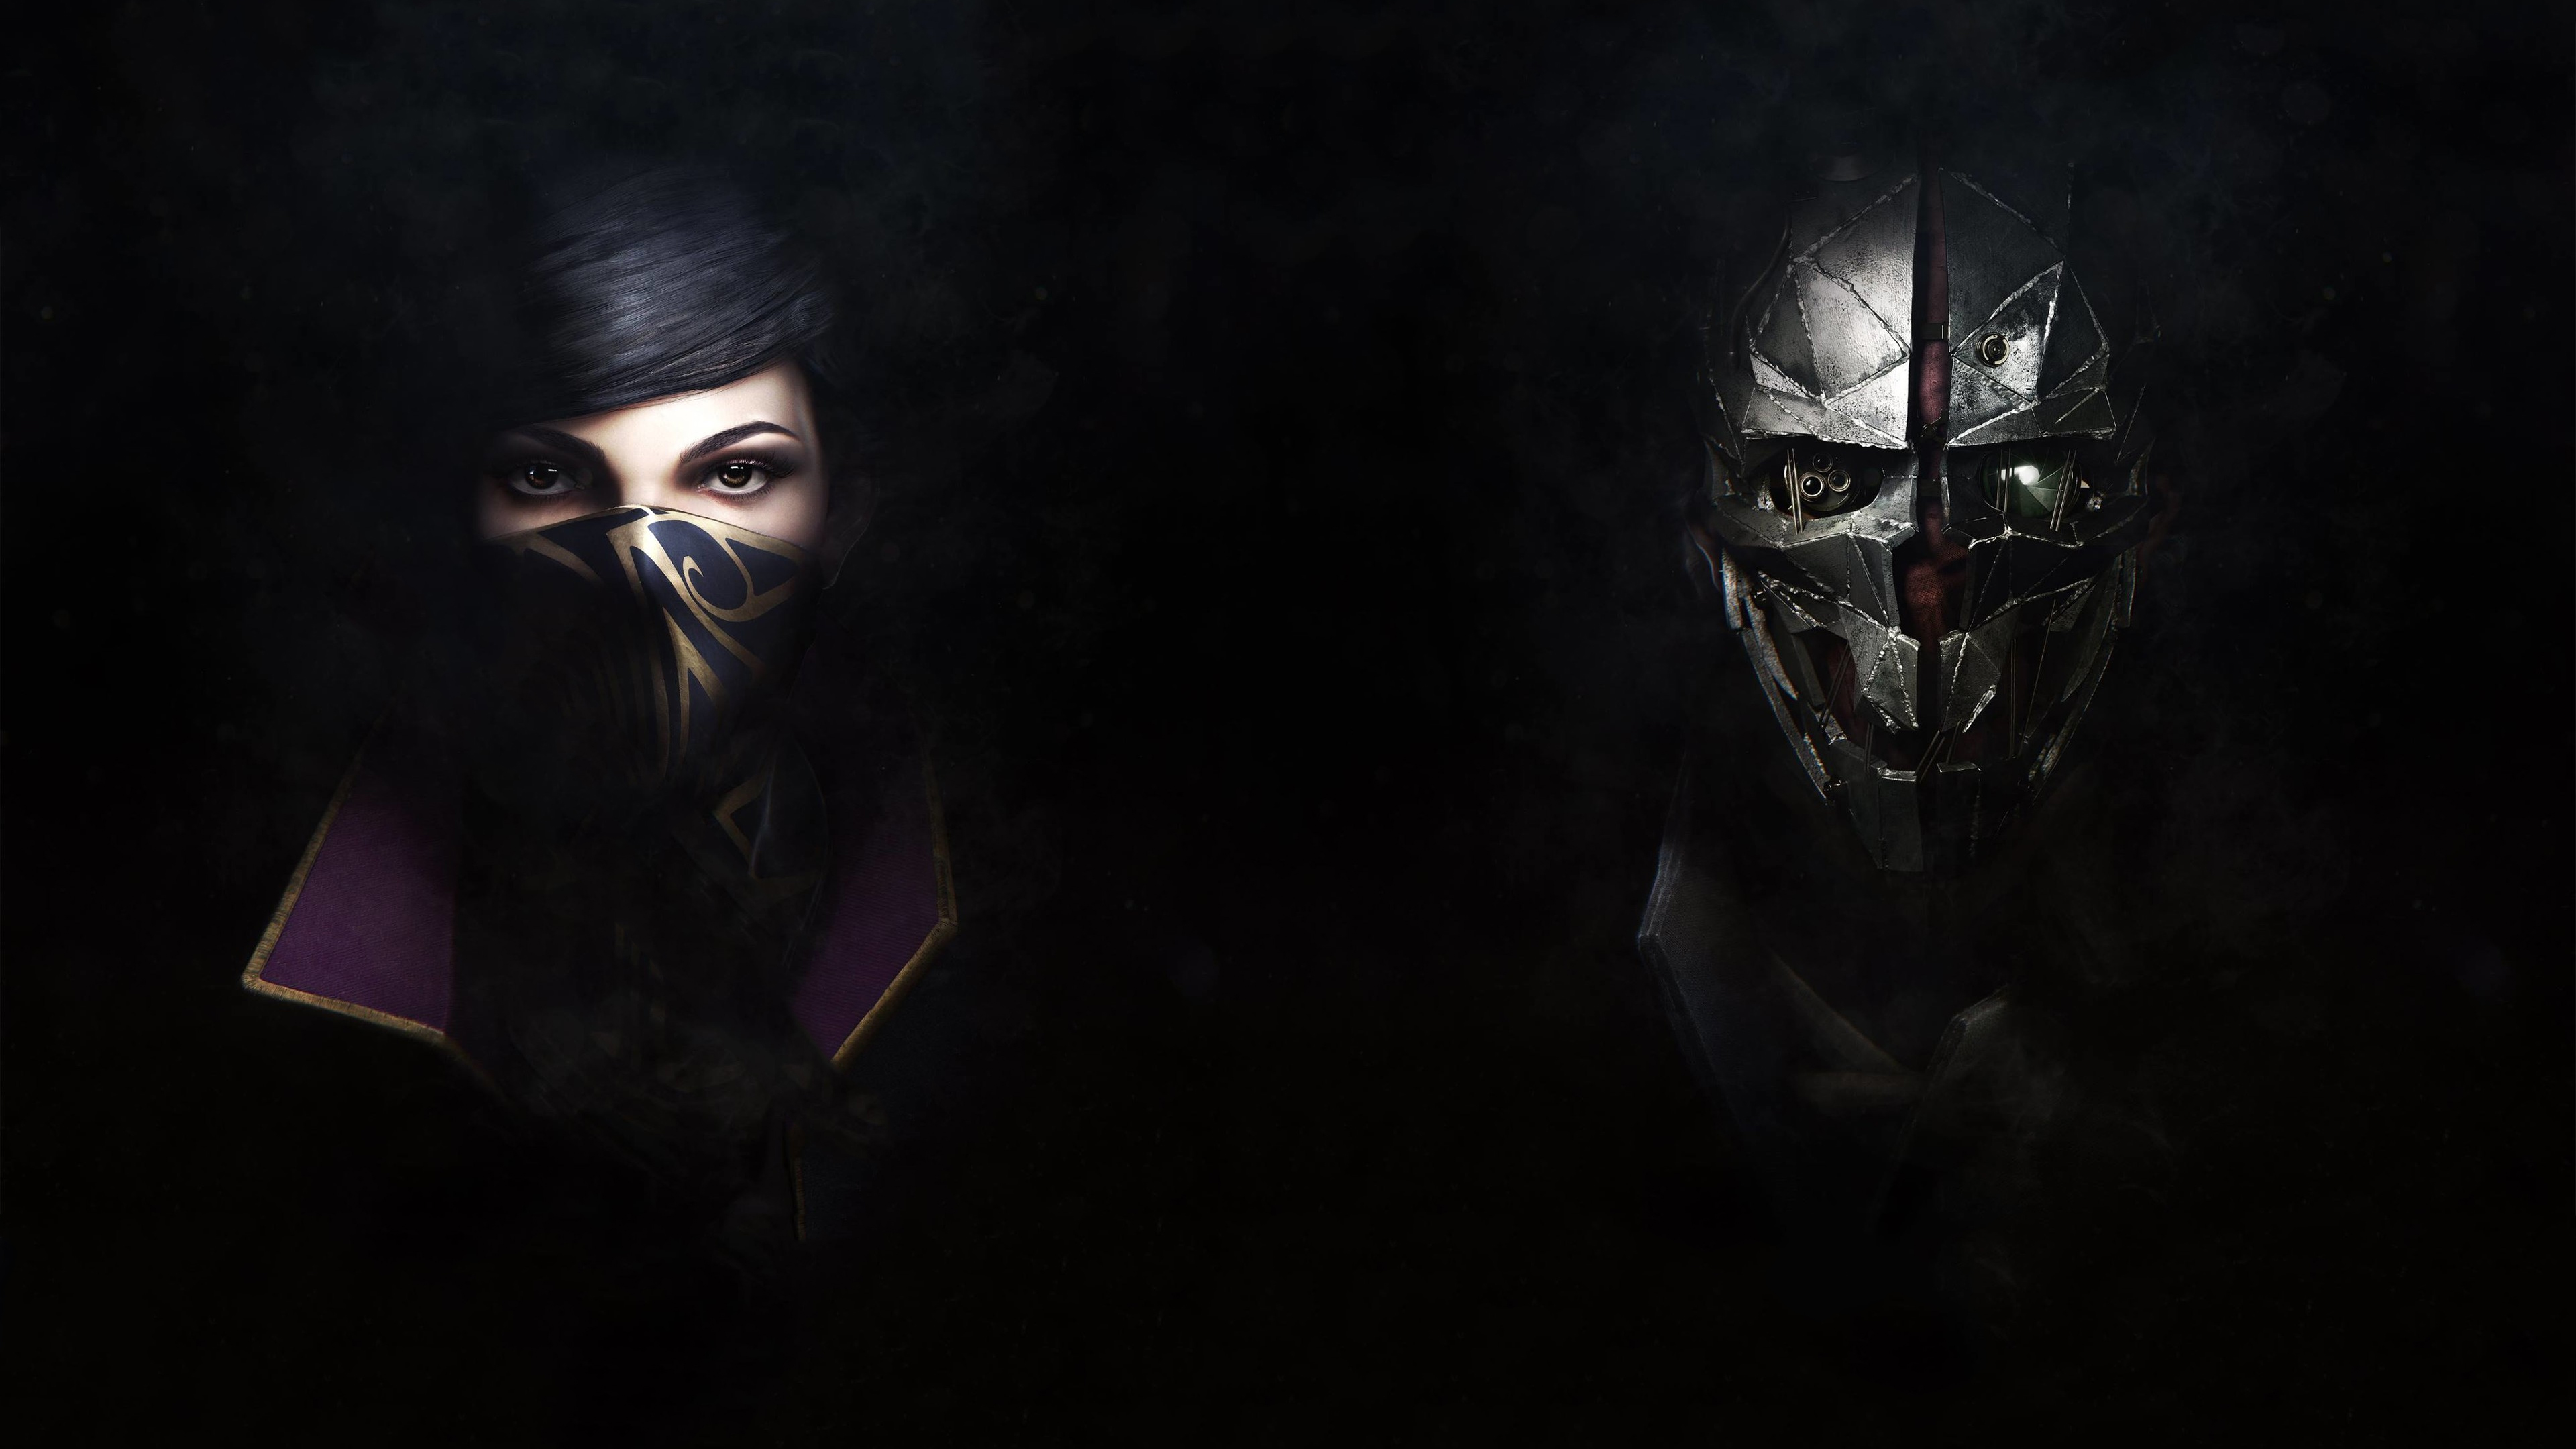 Dishonored 2 Wallpapers, Pictures, Images